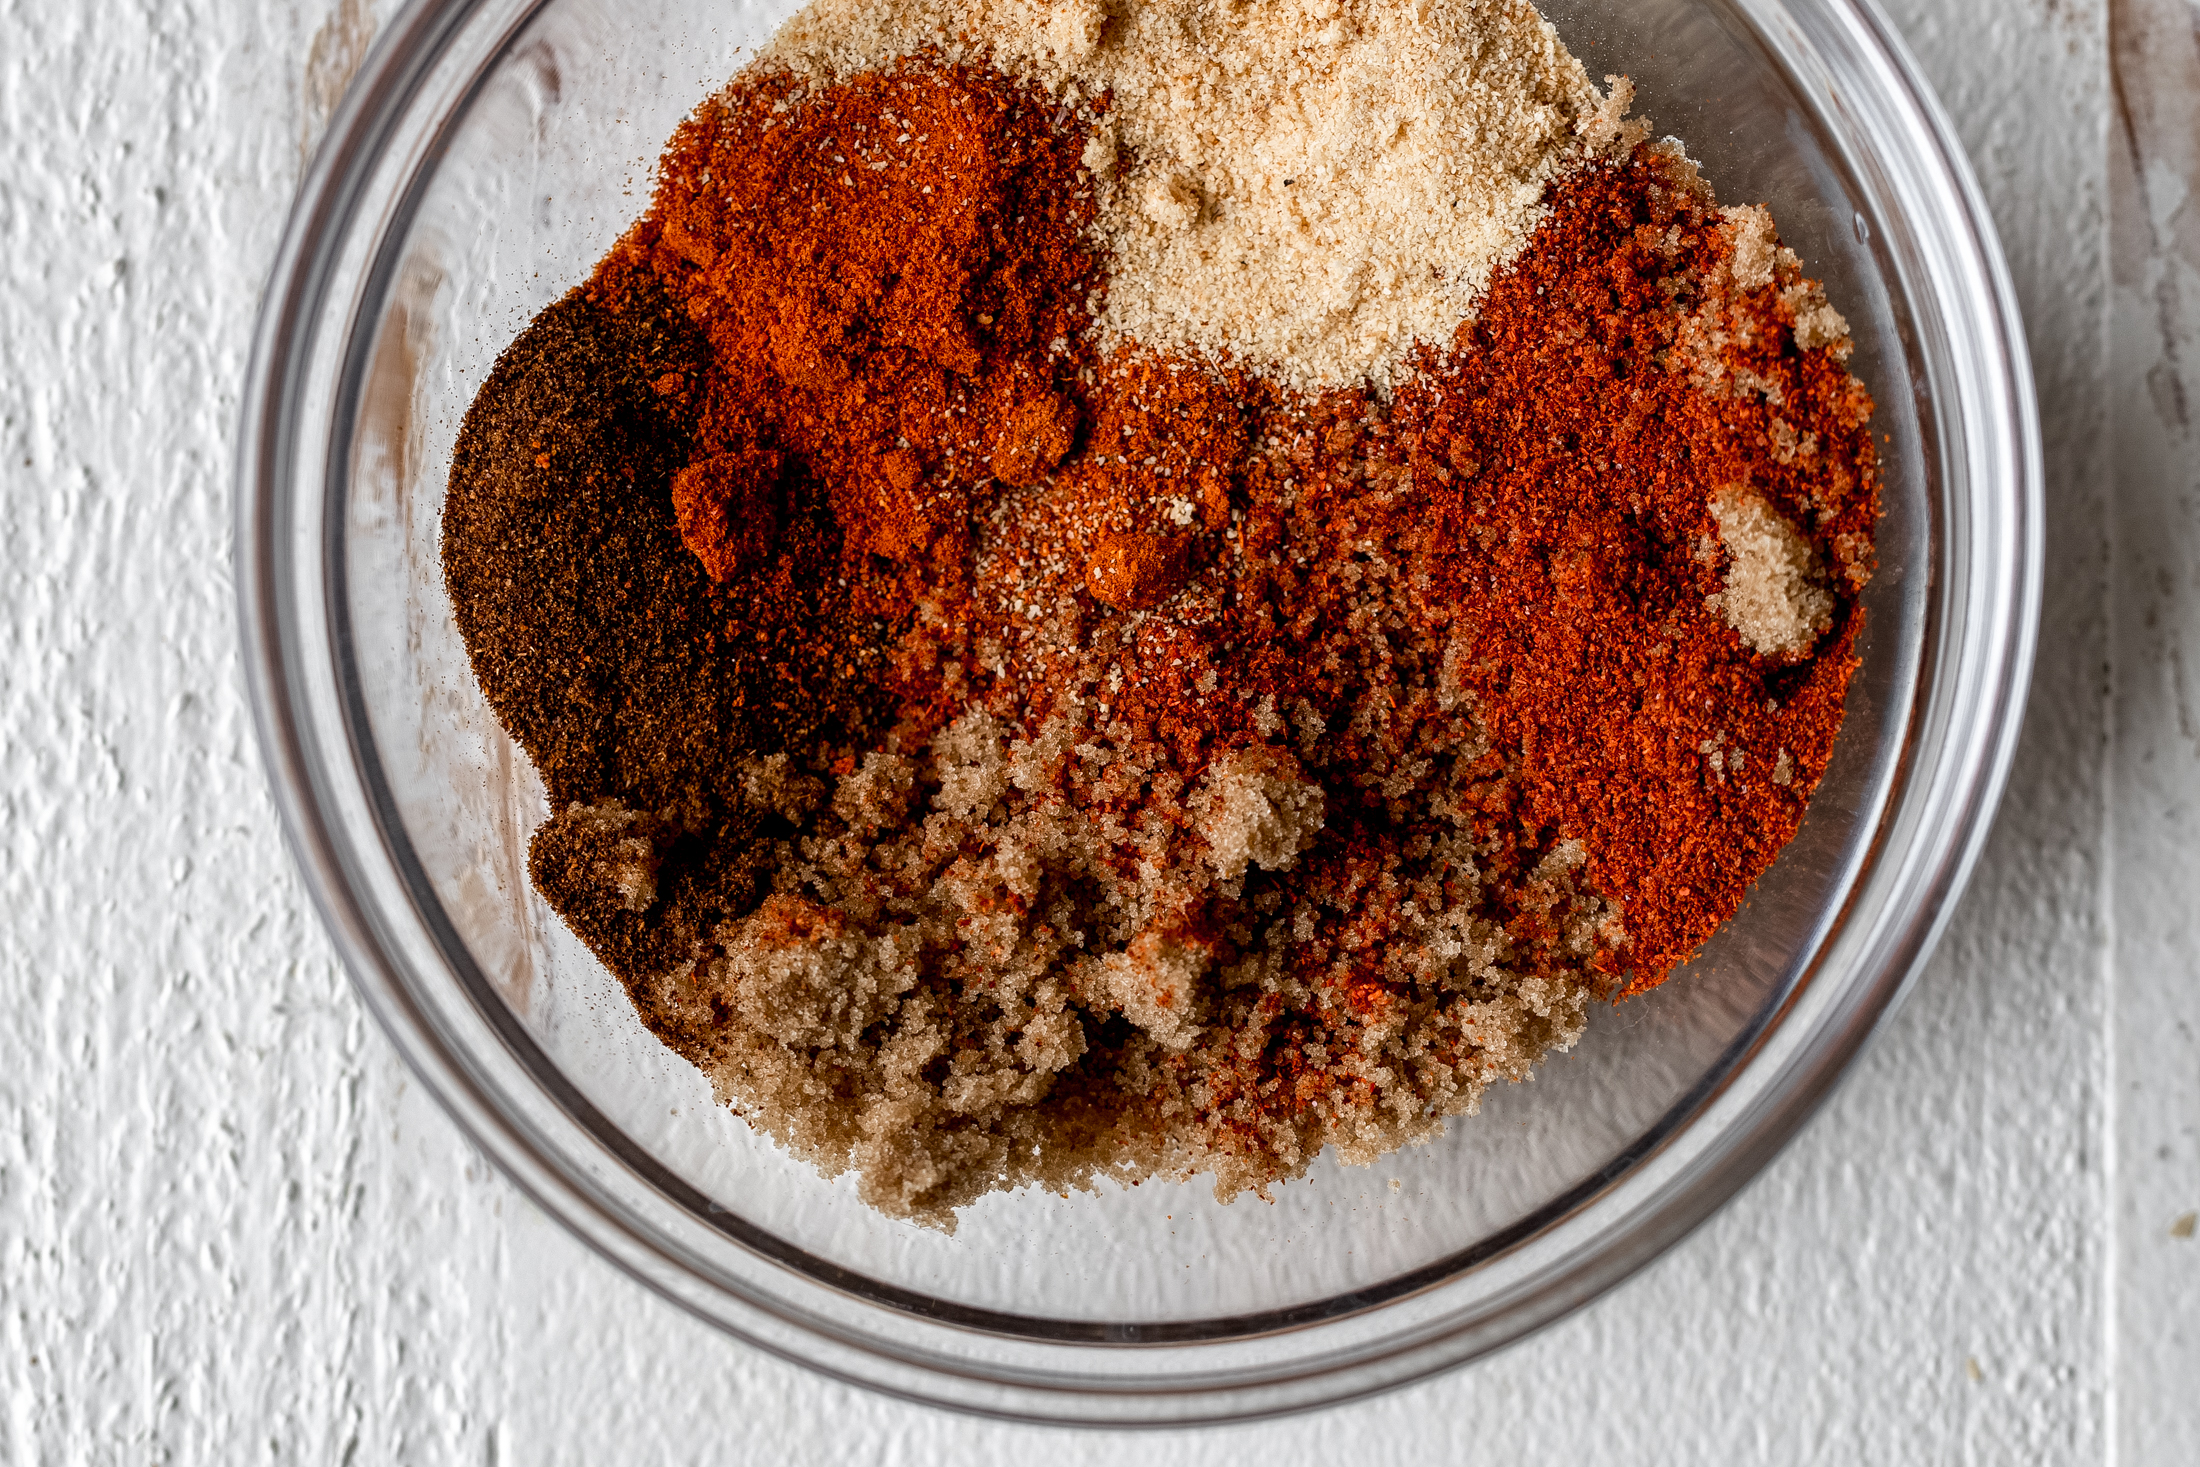 Nashville Style Hot Chicken spice mixture cayenne brown sugar chili powder paprika